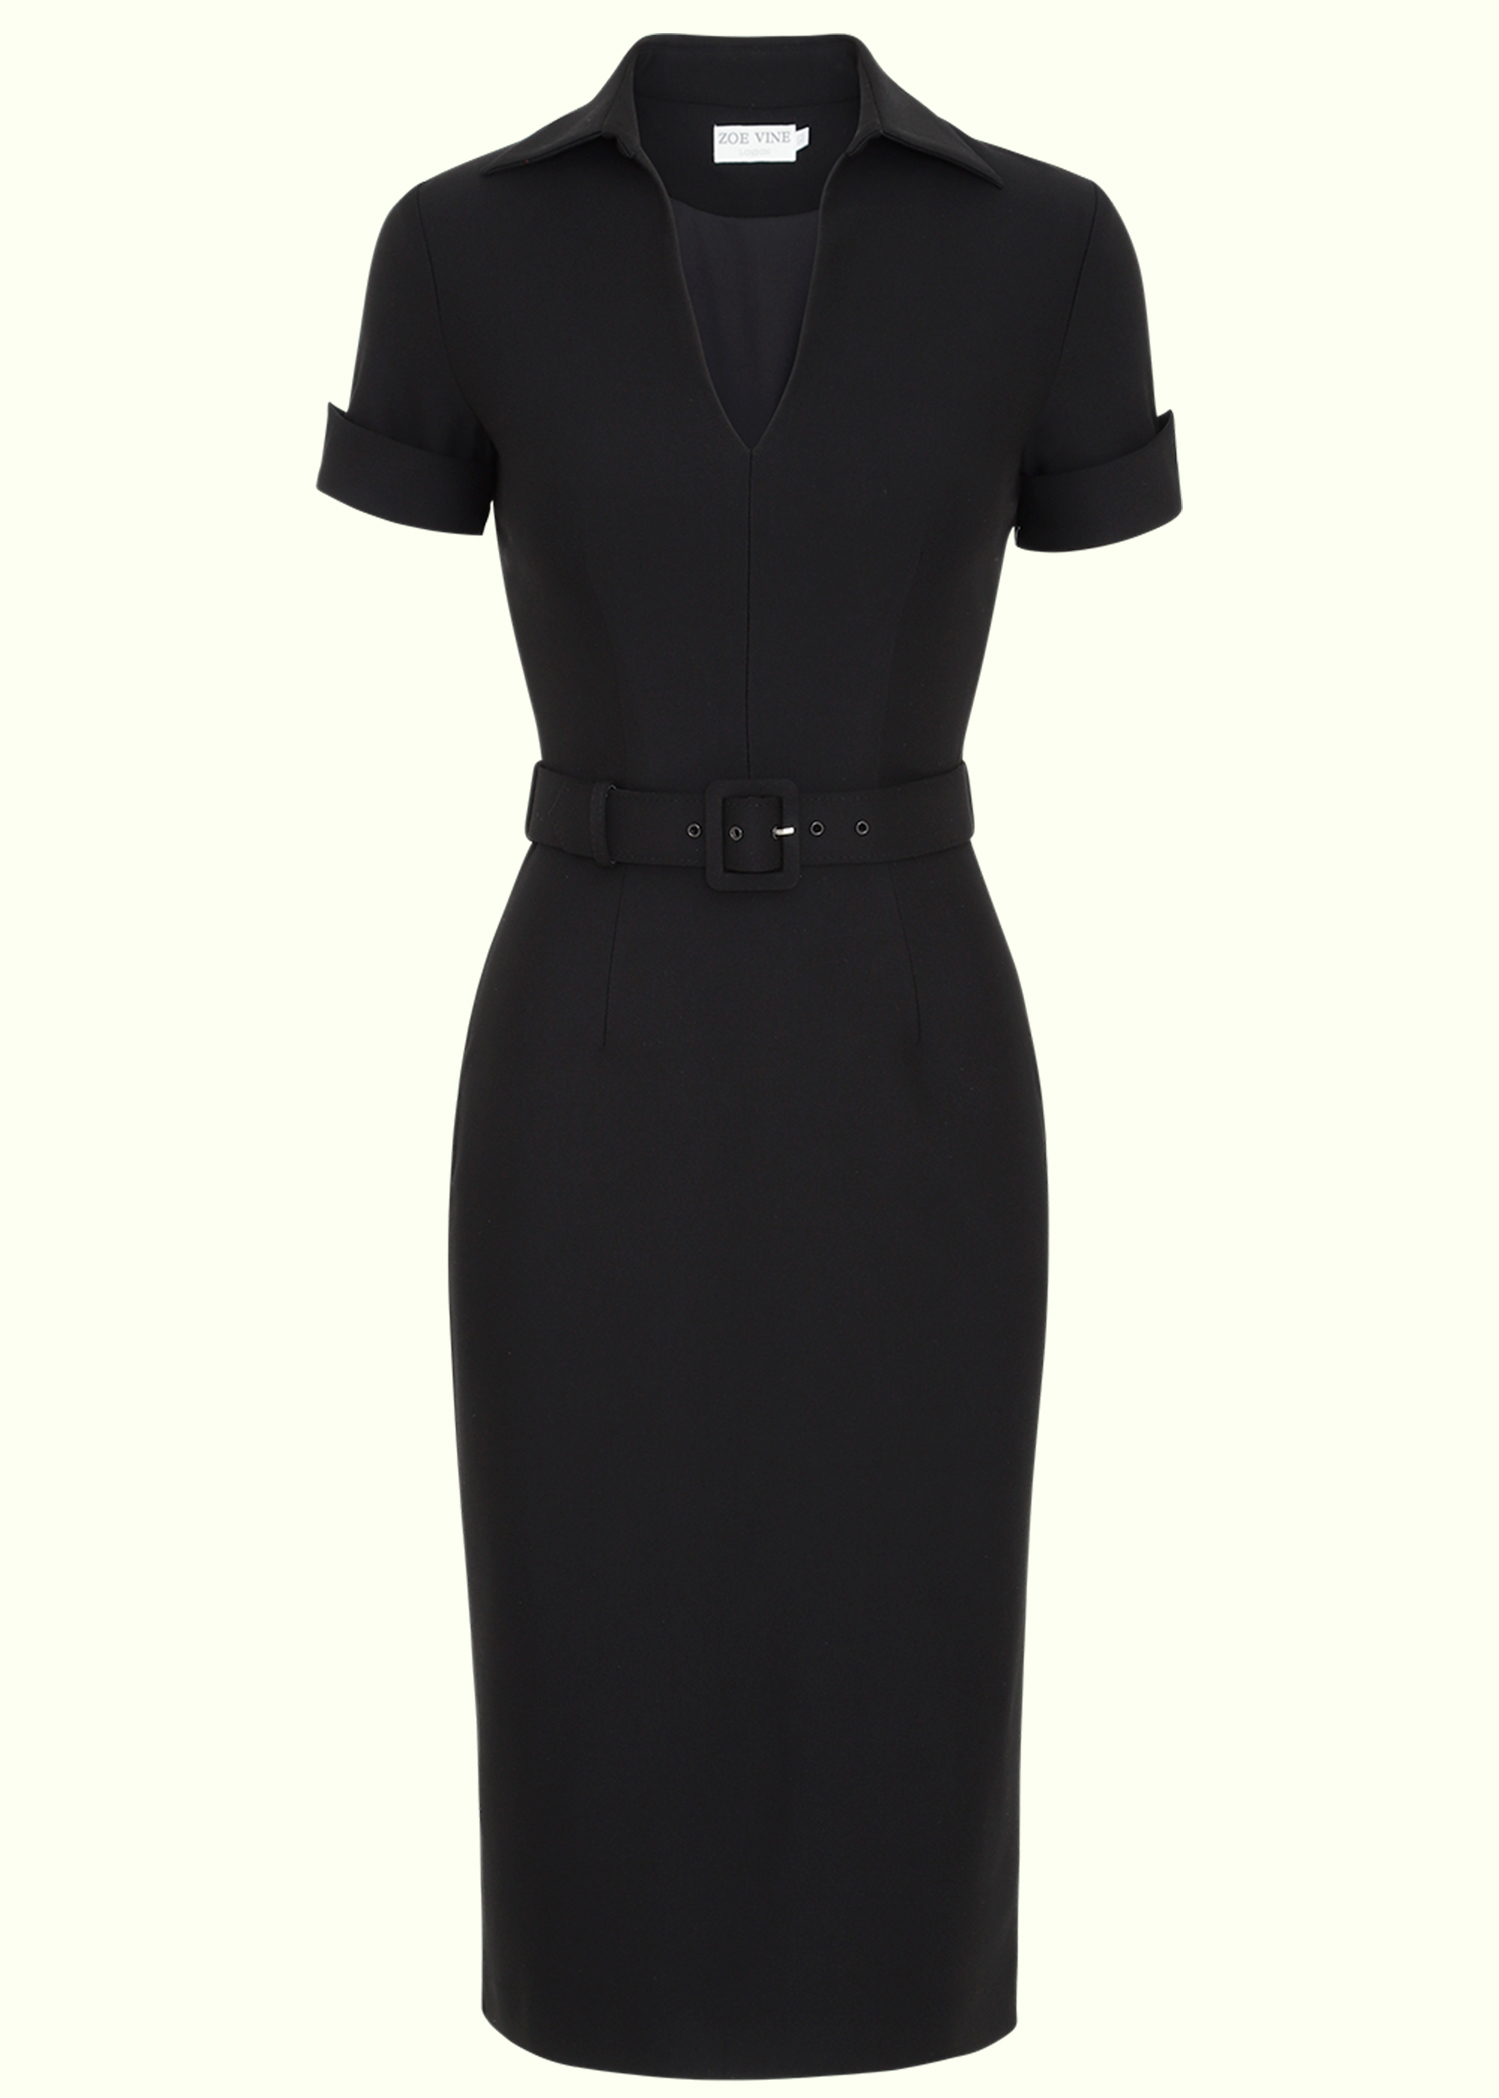 Black pencil dress in 50s style from Zoe Vine